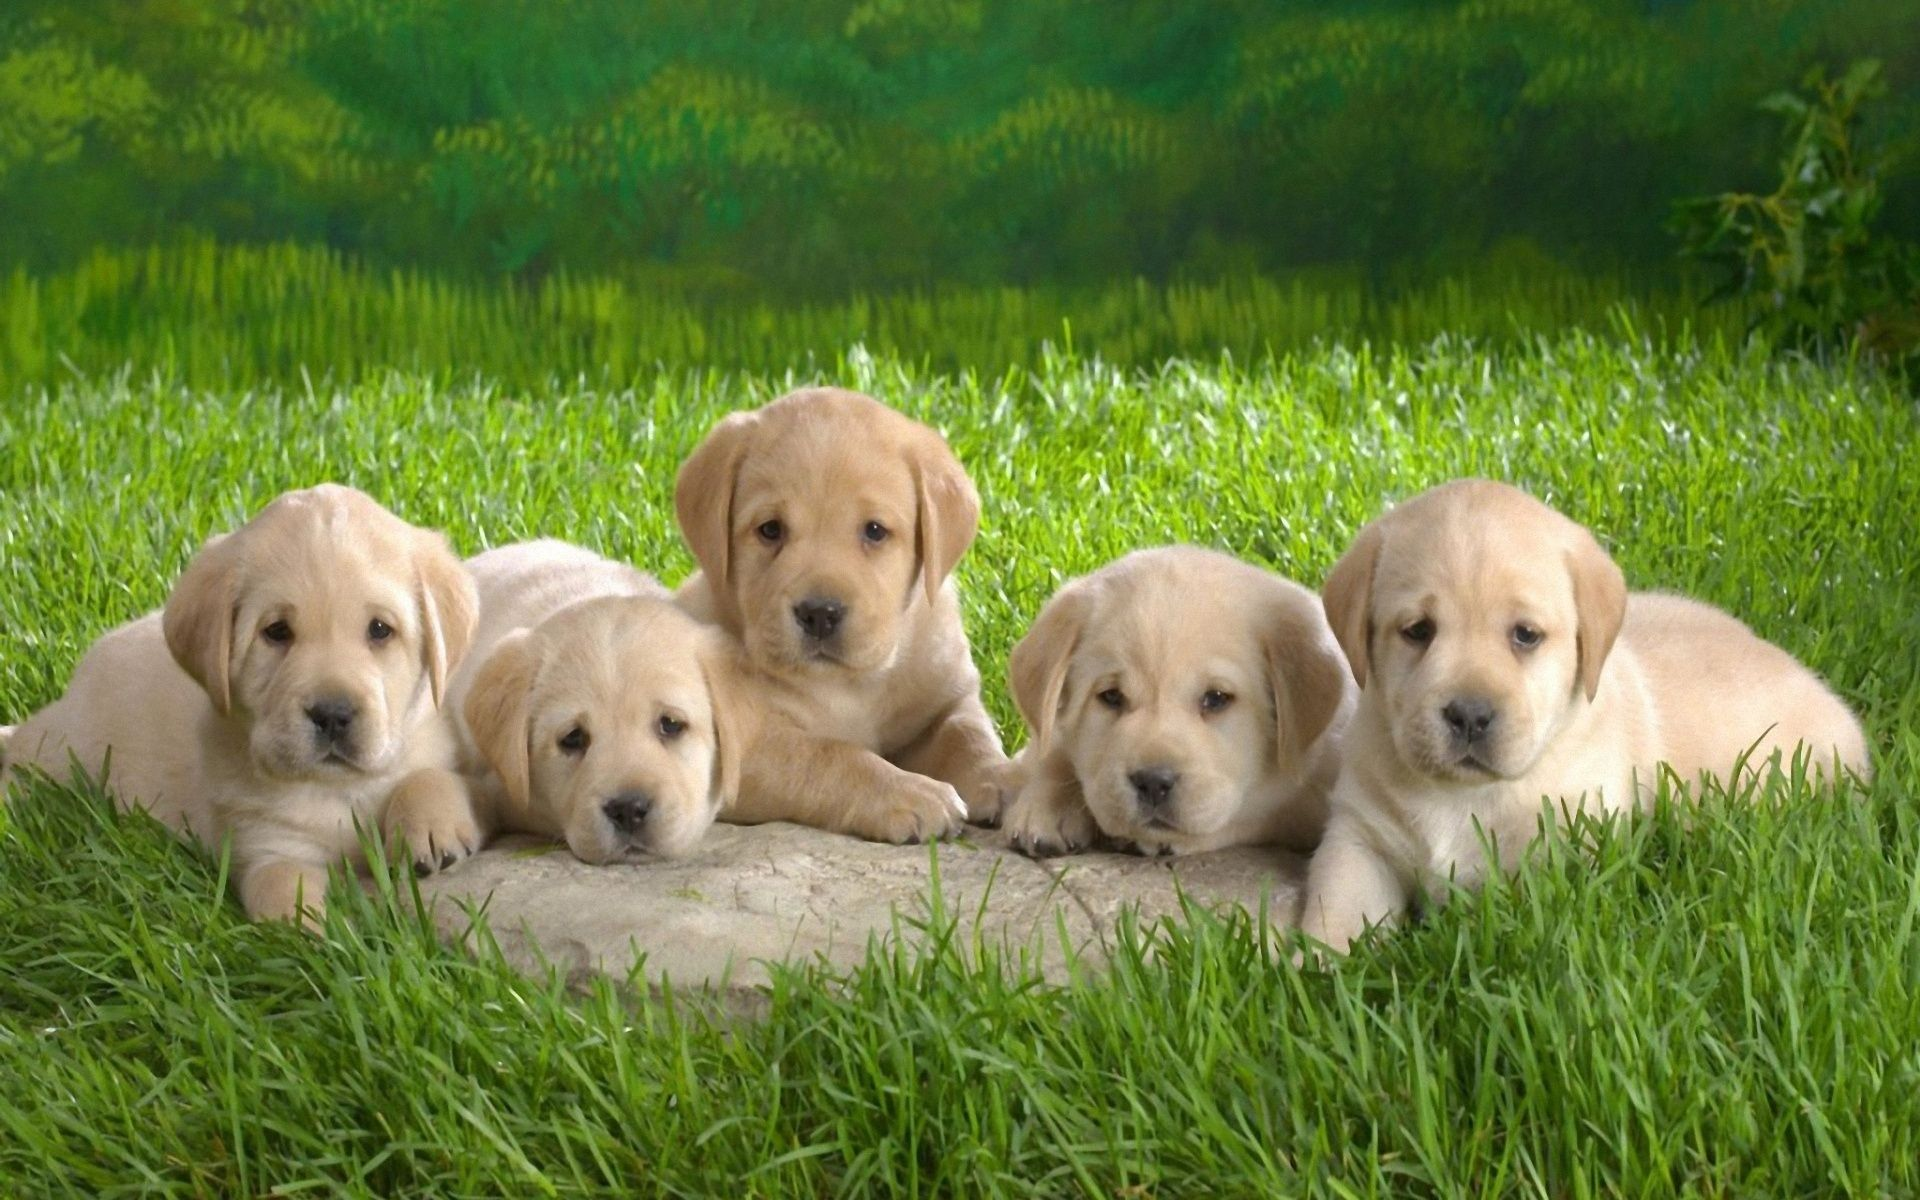 Free Puppy Wallpapers For Computer Wallpaper Cave Puppies Labrador Retriever Puppies Dogs And Puppies